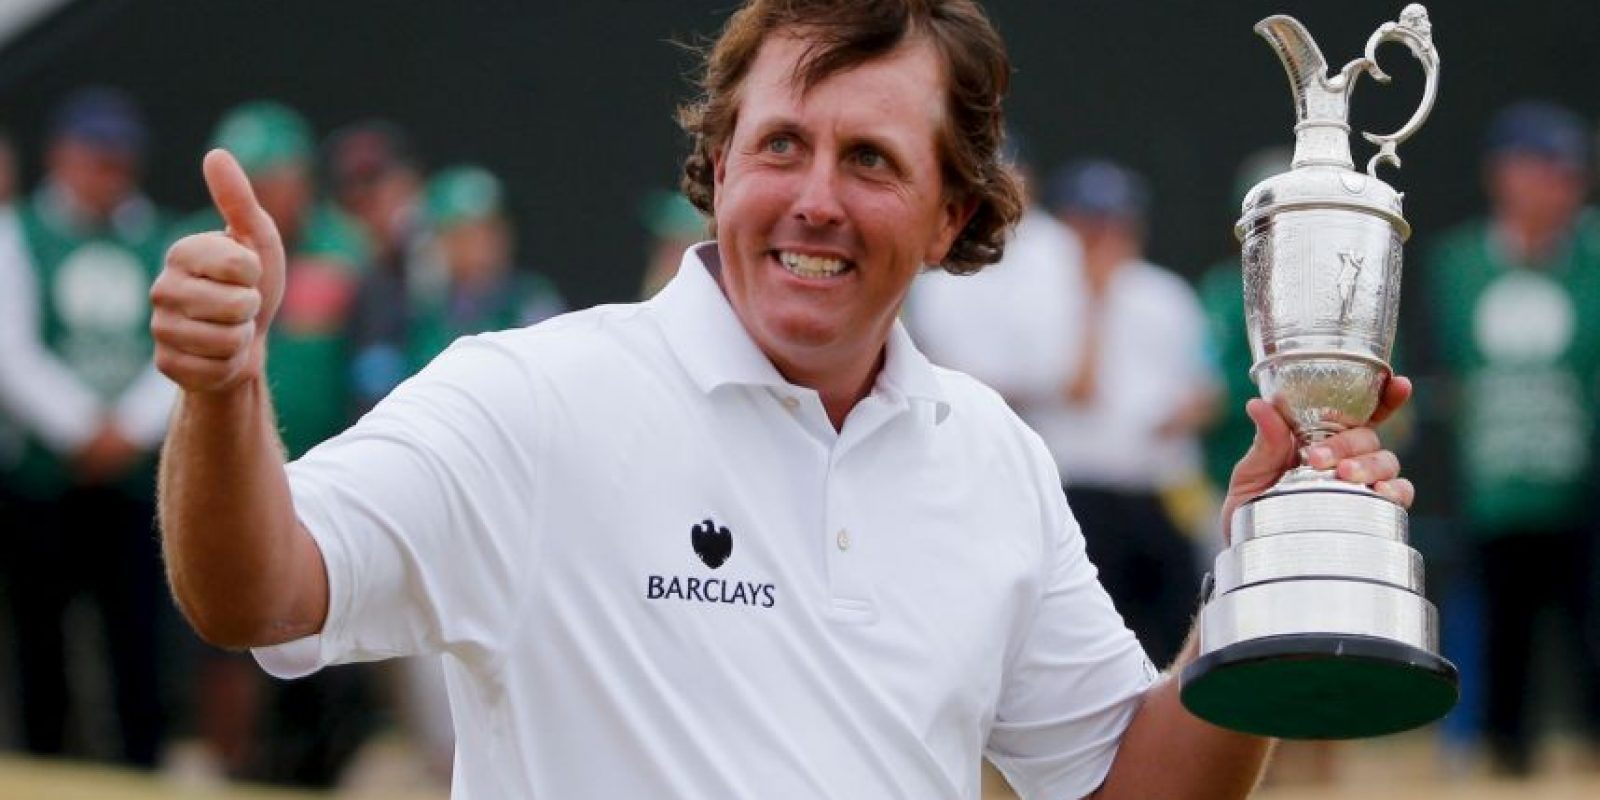 3. Phil Mickelson / Golf Foto:Getty Images